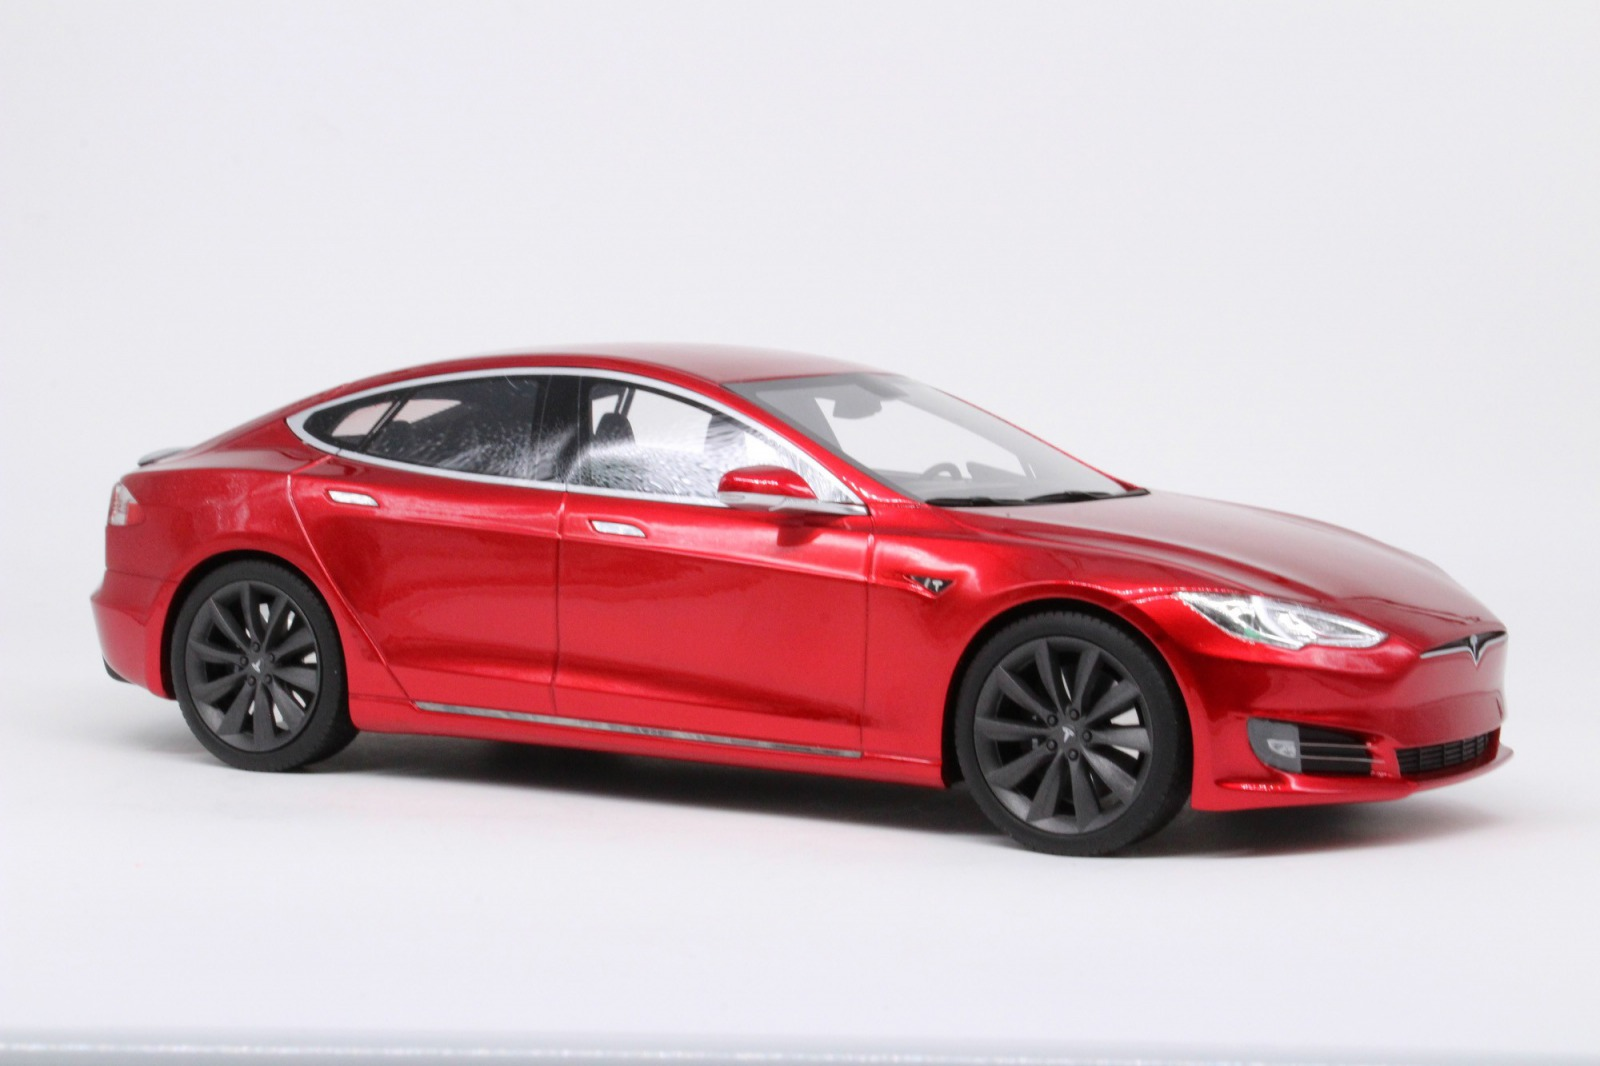 LS Collectibles 1:18 2016年モデル テスラ モデル S フェイスリフトモデル2016 Tesla Model S 1/18 by LS Collectibles USA